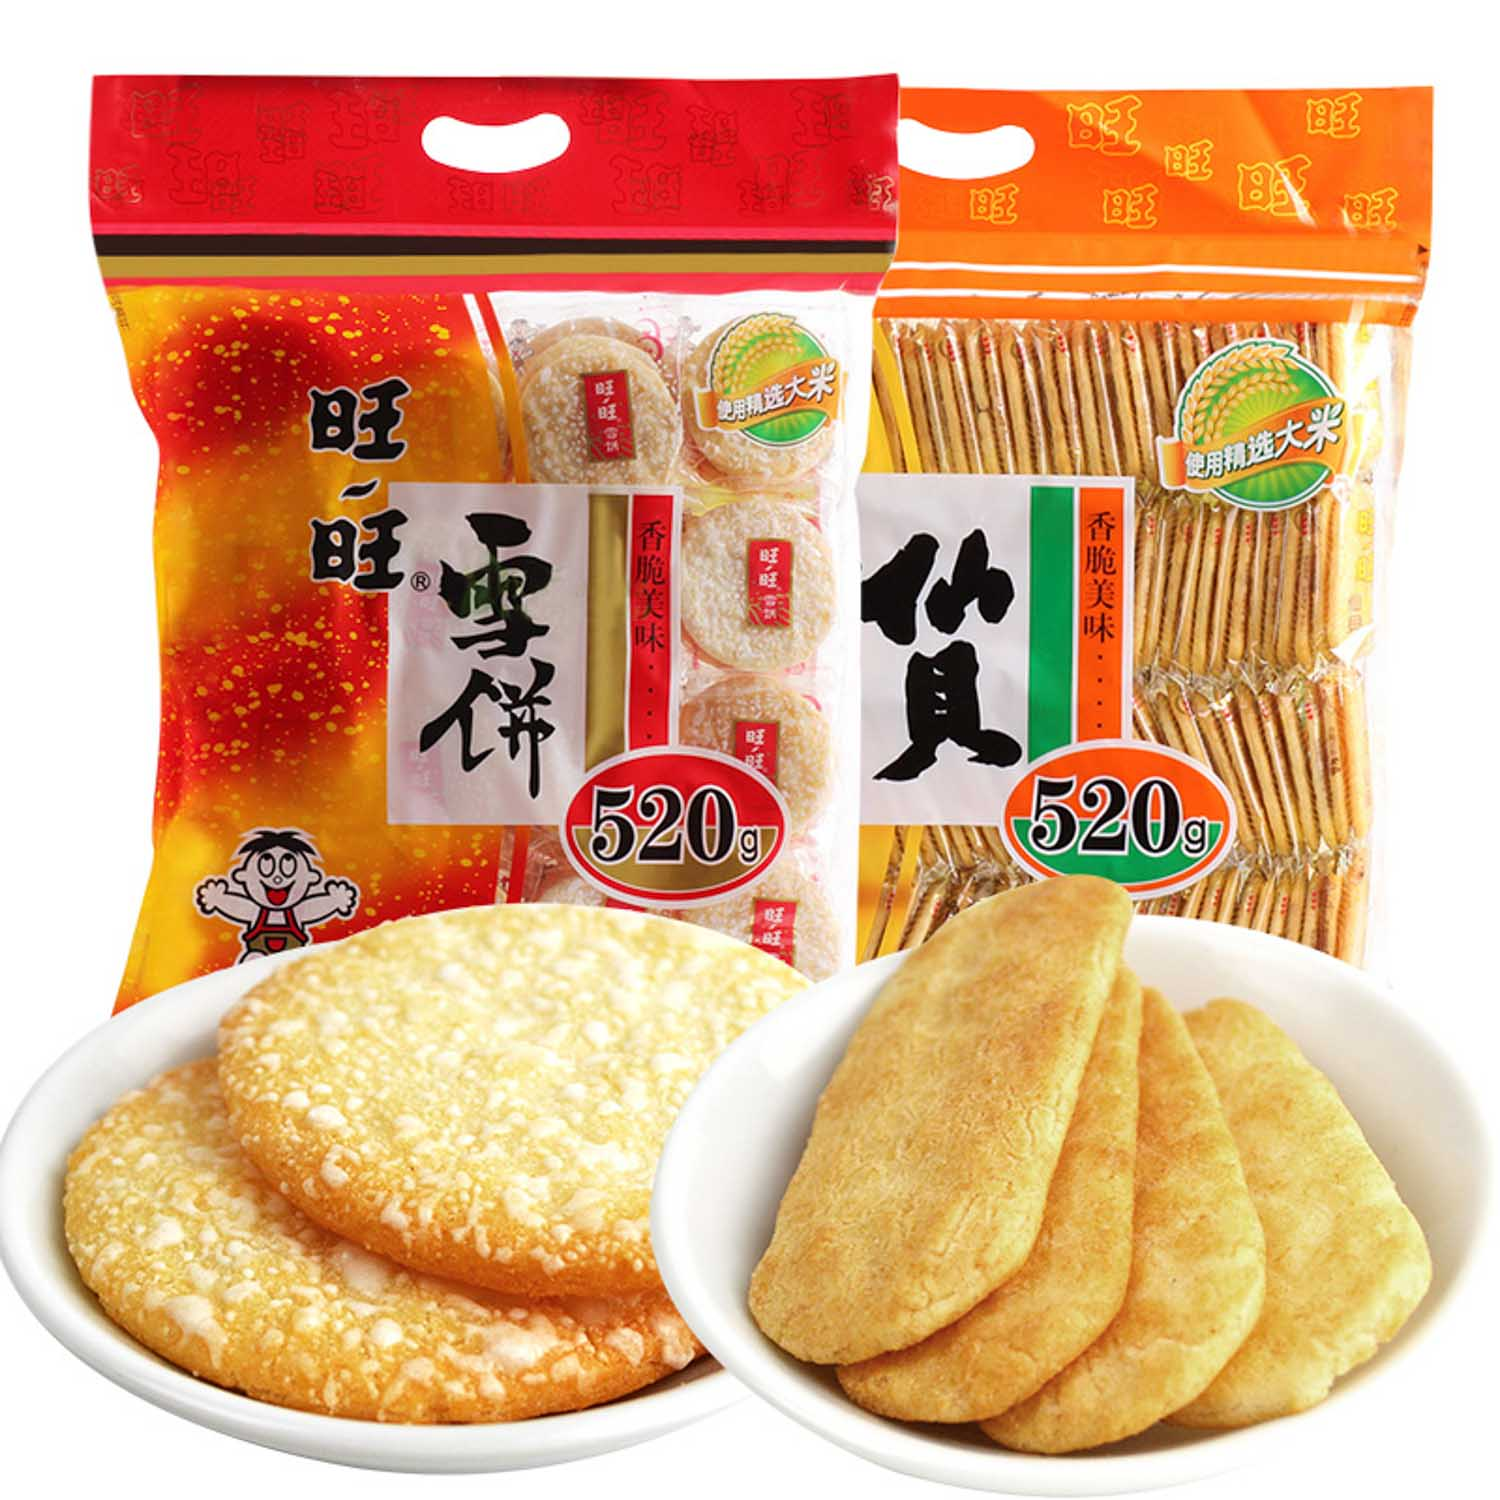 Primary School Snacks - Want Want Rice Crackers